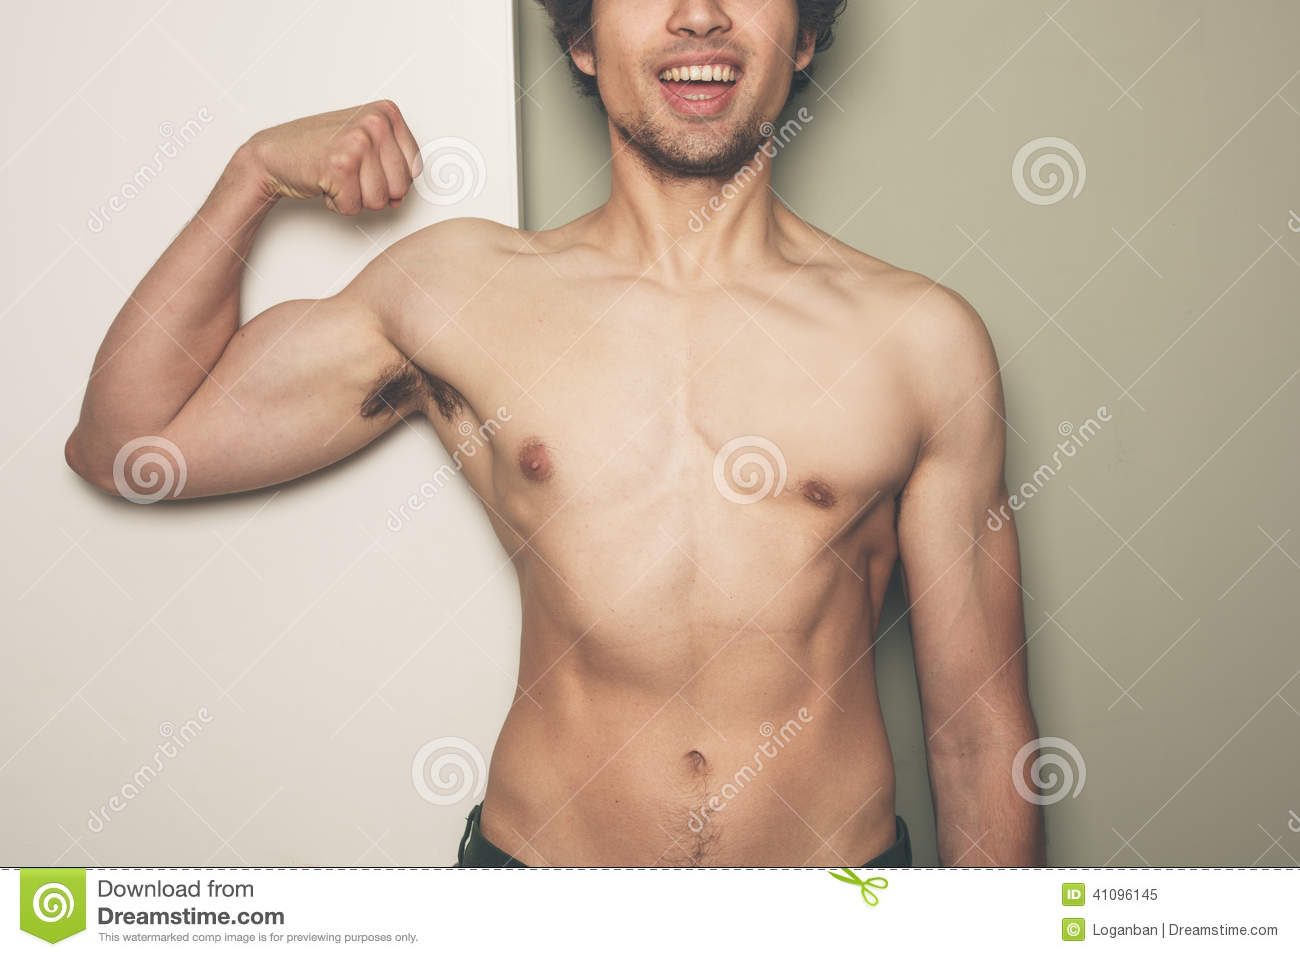 Young Athletic Man Flexing His Muscles Stock Photo - Image: 41096145